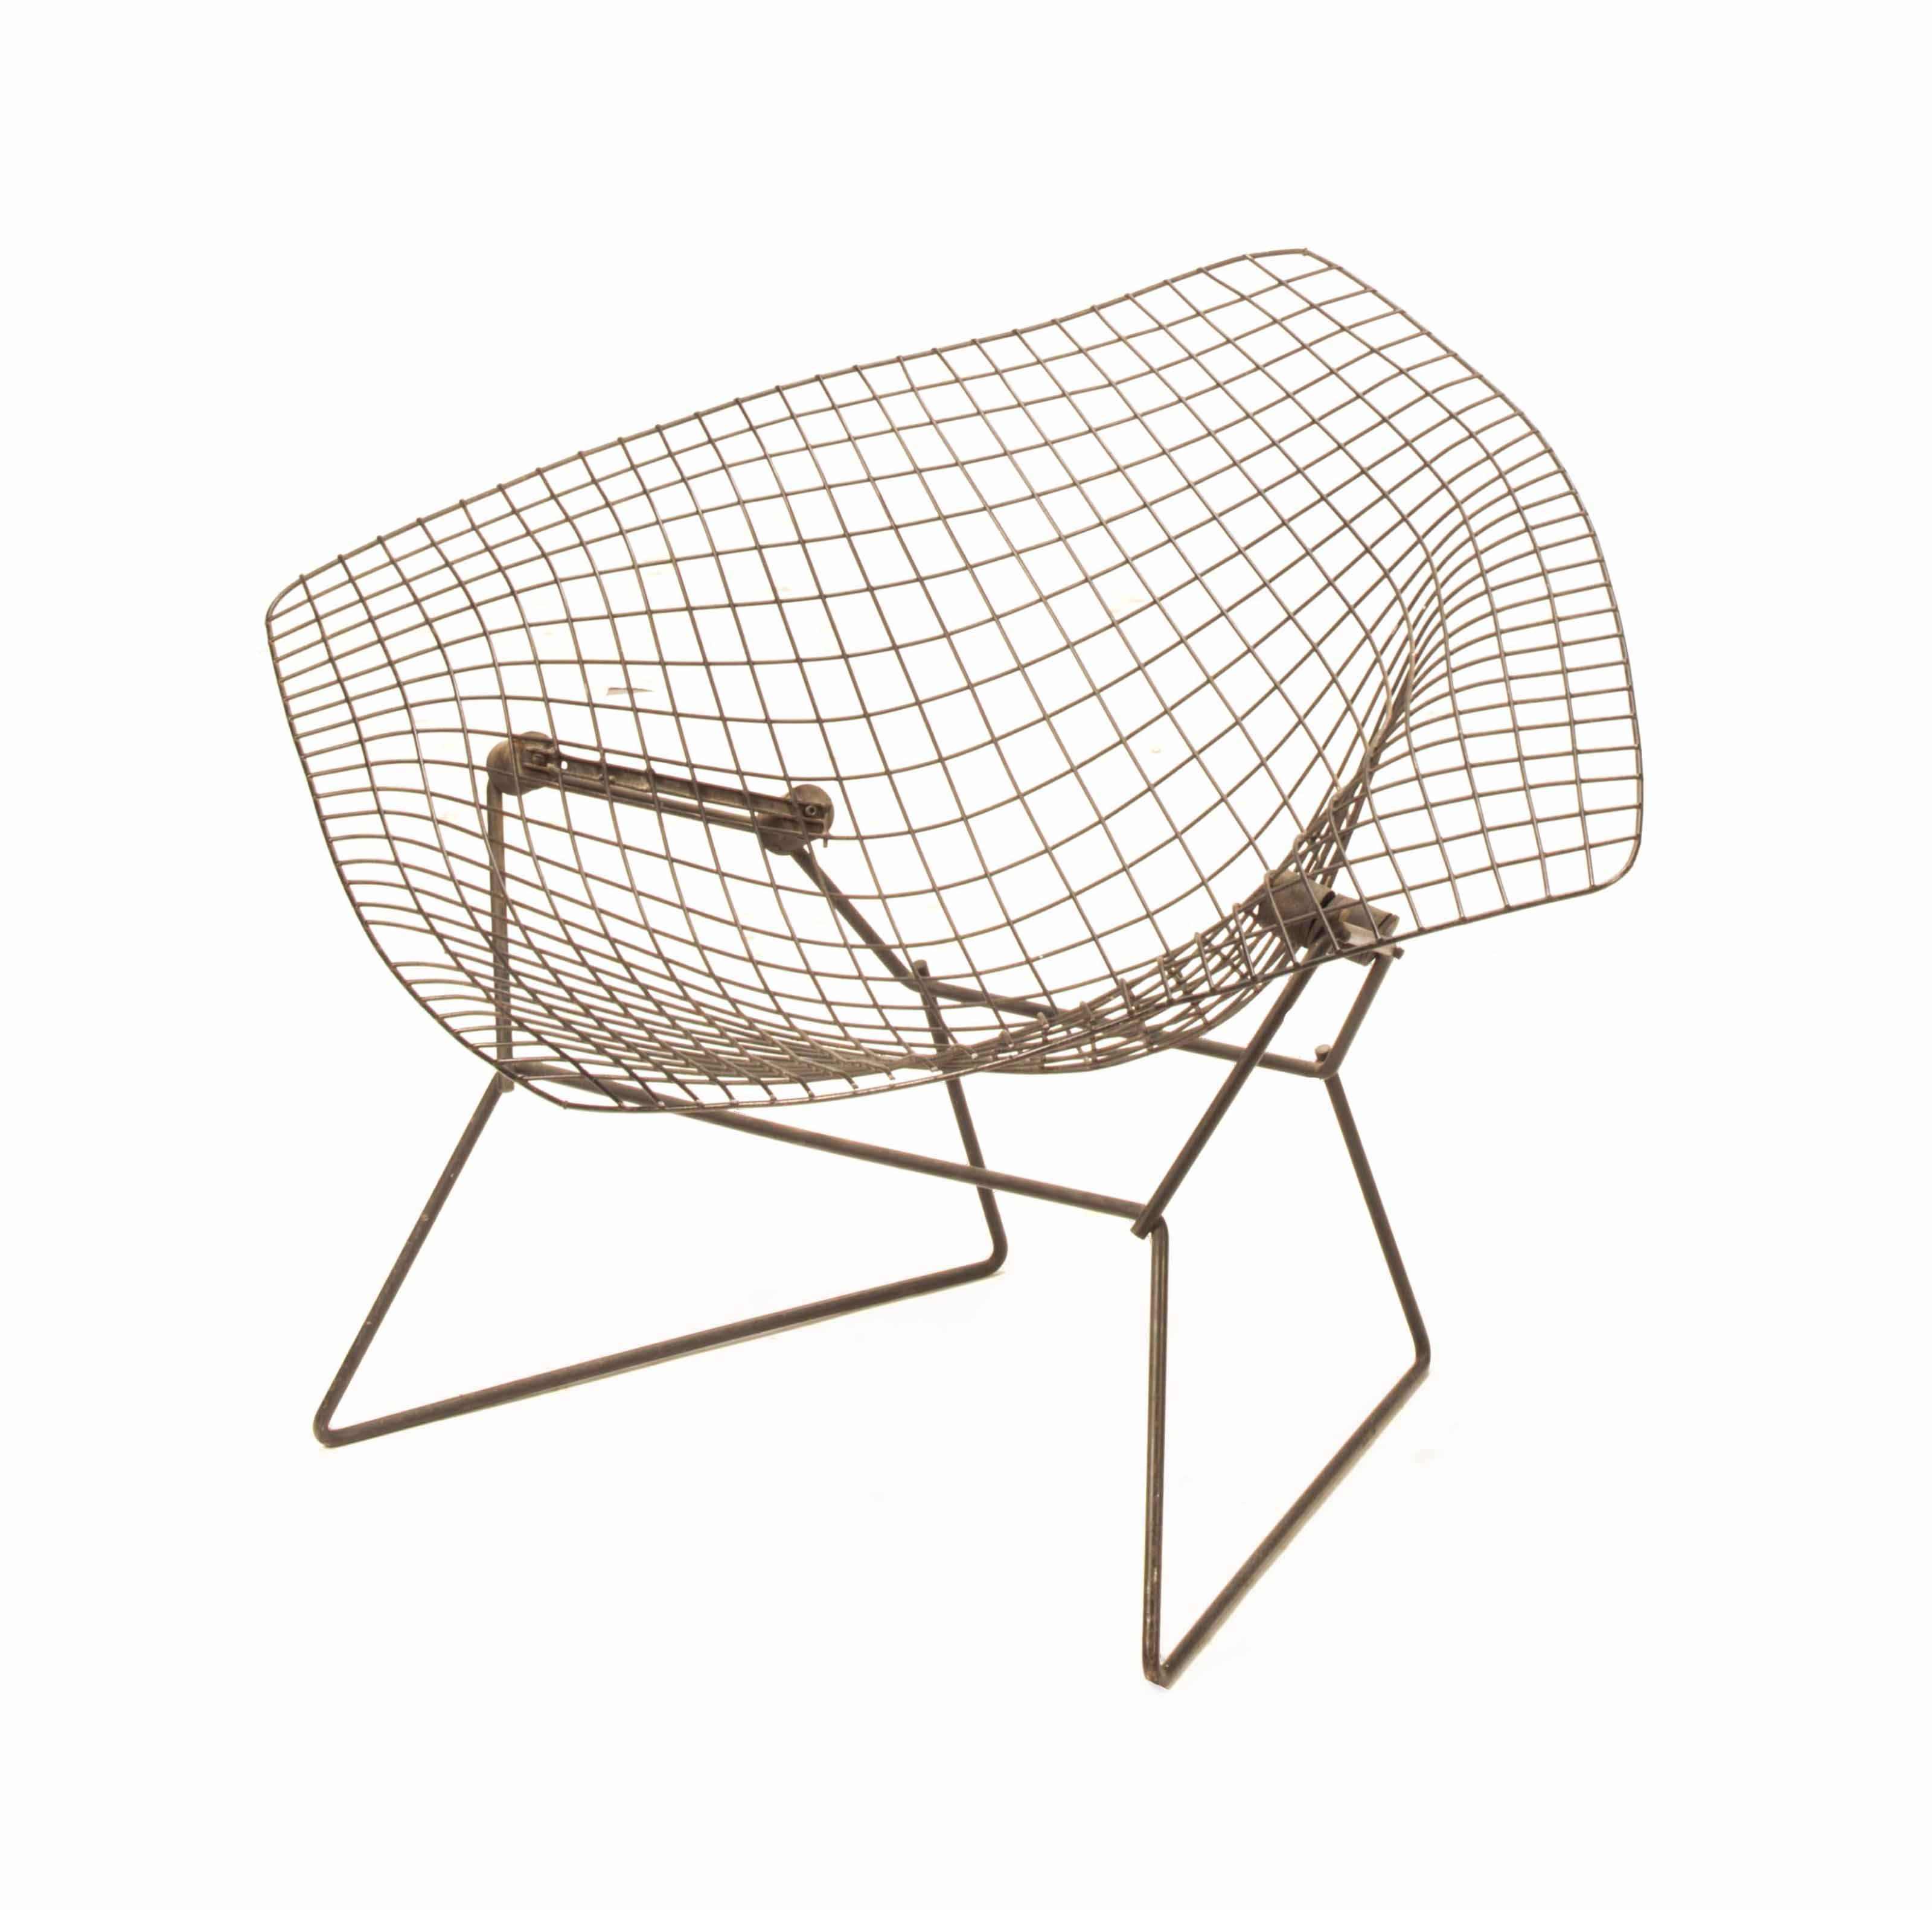 Marvelous A Black Enameled Metal Diamond Lounge Chair Designed By Alphanode Cool Chair Designs And Ideas Alphanodeonline